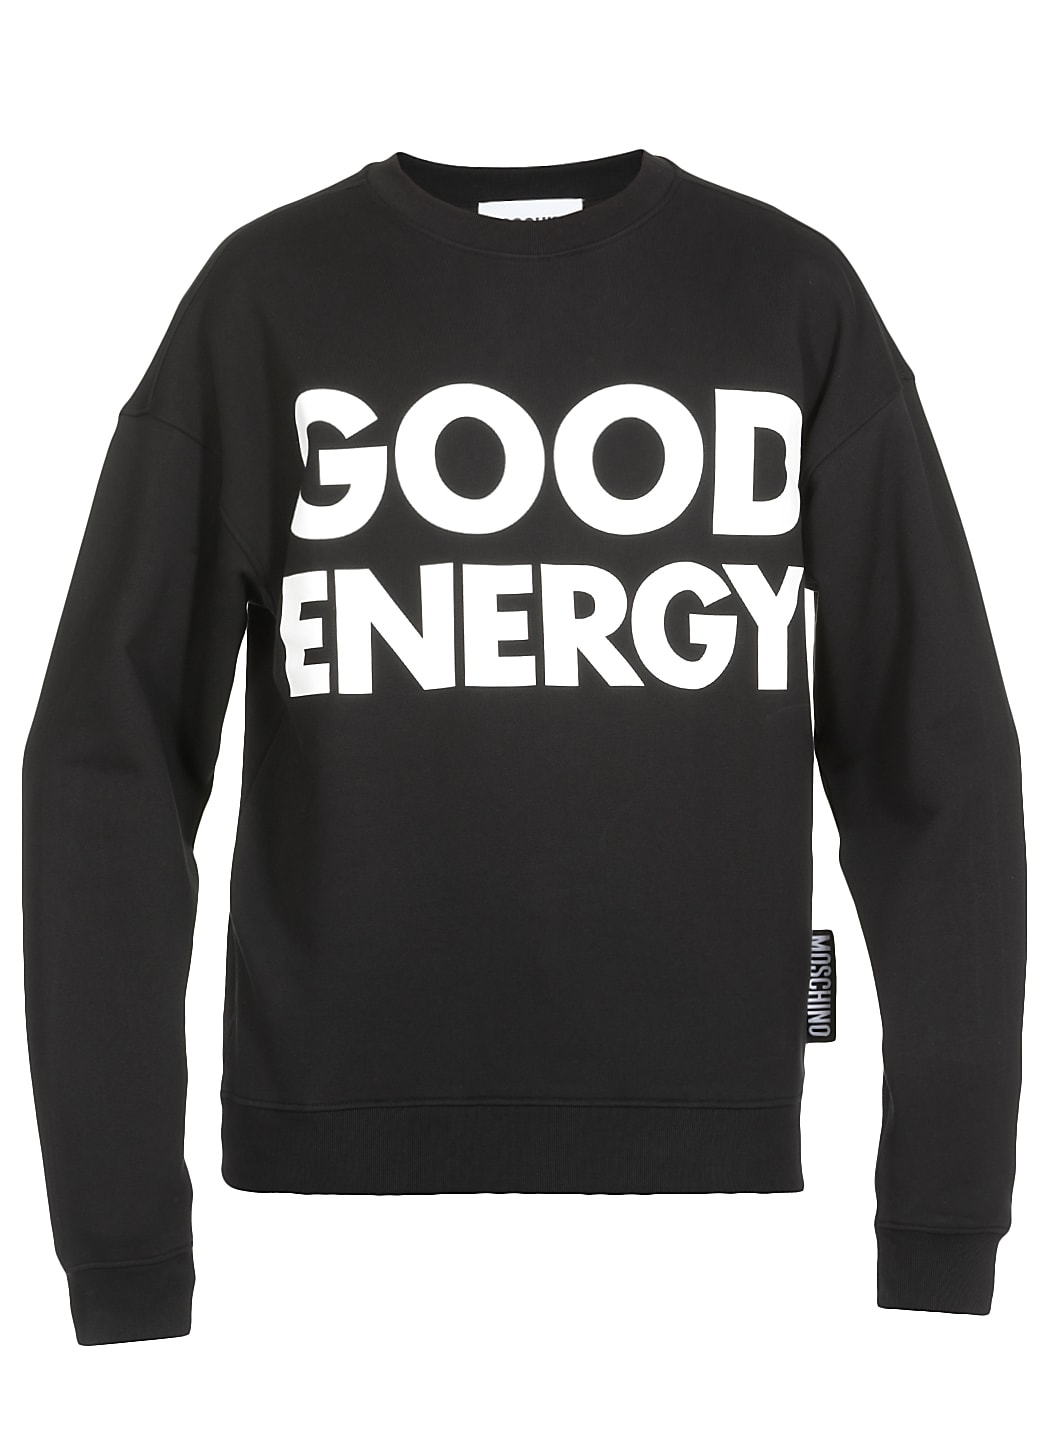 MOSCHINO GOOD ENERGY SWEATSHIRT